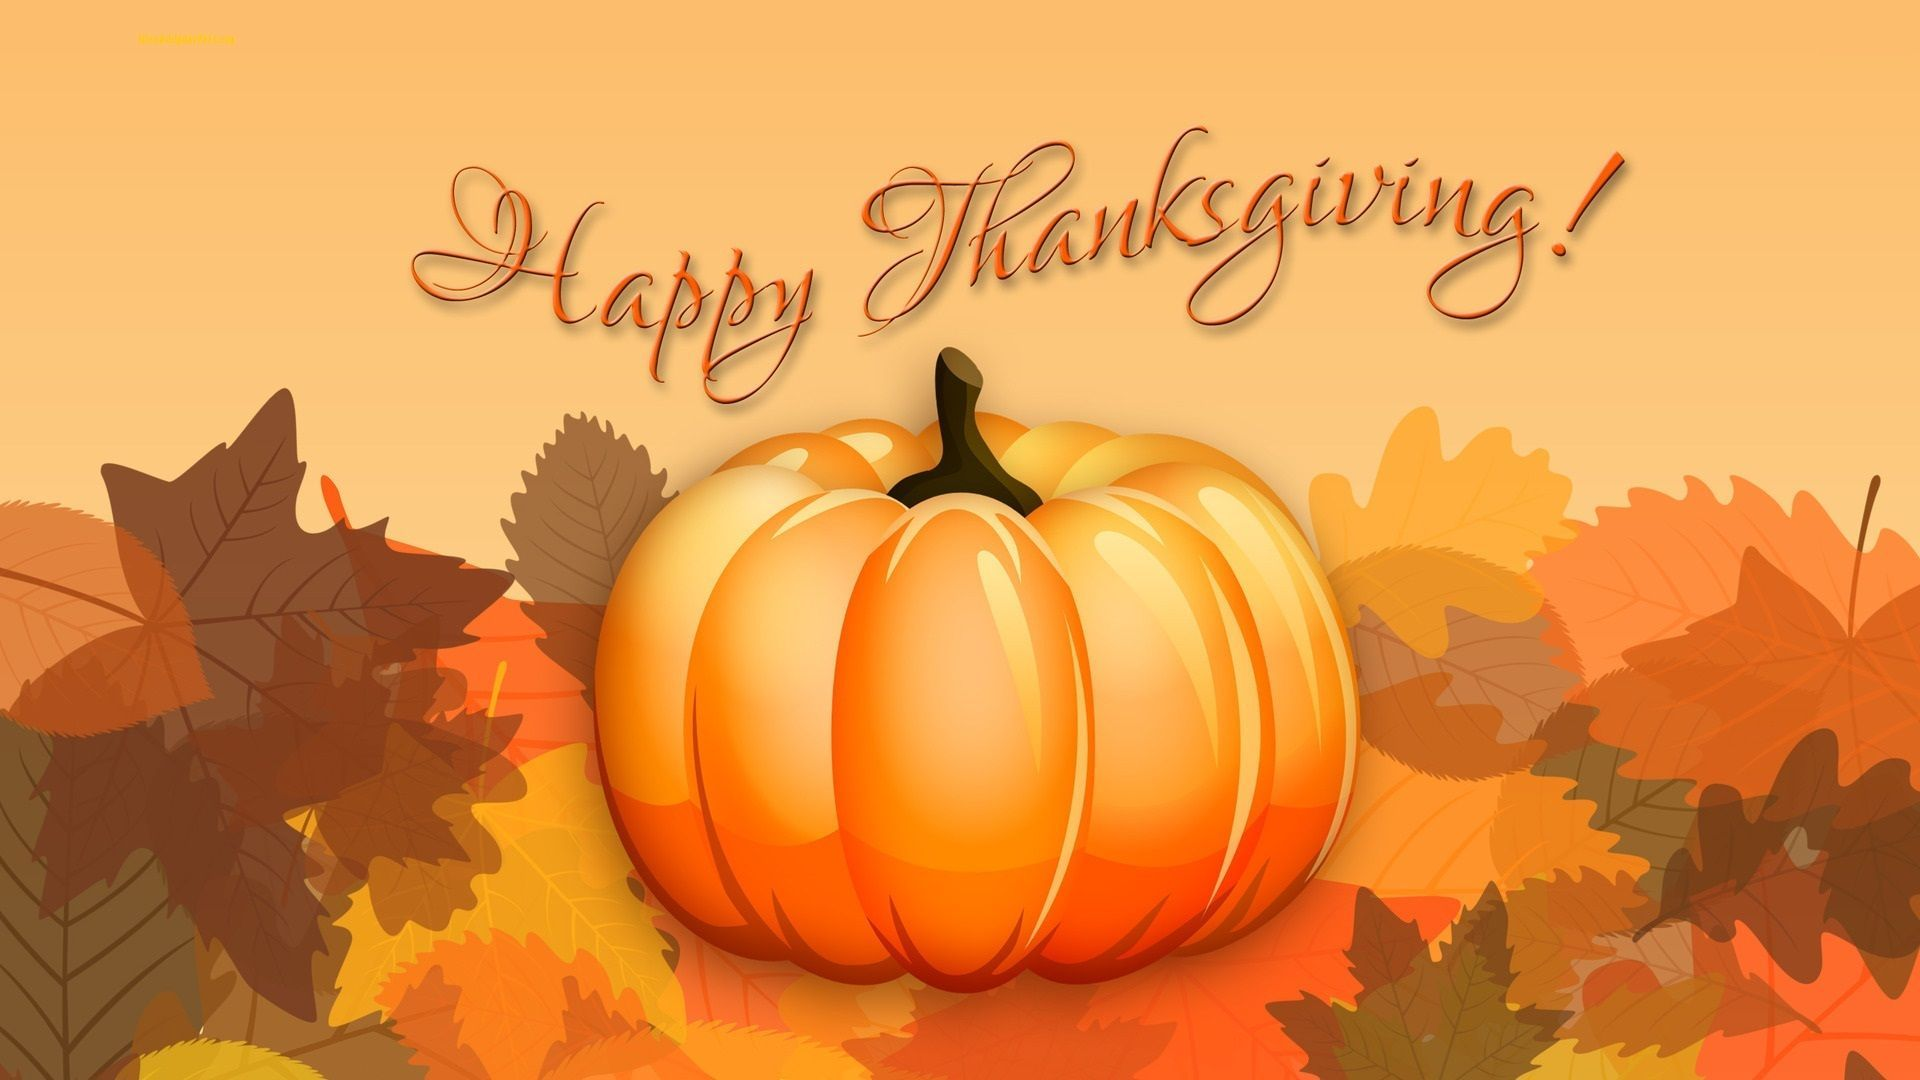 Happy Thanksgiving Images 2019 | Thanksgiving Day Pictures Photos Pics & Wallpaper For Facebook | Happy Thanksgiving Images 2019 - Thanksgiving Images Quotes Wishes Messages Pics & HD Wallpaper Free Download #happyfallyallwallpaper Happy Thanksgiving Images 2019 | Thanksgiving Day Pictures Photos Pics & Wallpaper For Facebook | Happy Thanksgiving Images 2019 - Thanksgiving Images Quotes Wishes Messages Pics & HD Wallpaper Free Download #happyfallyallwallpaper